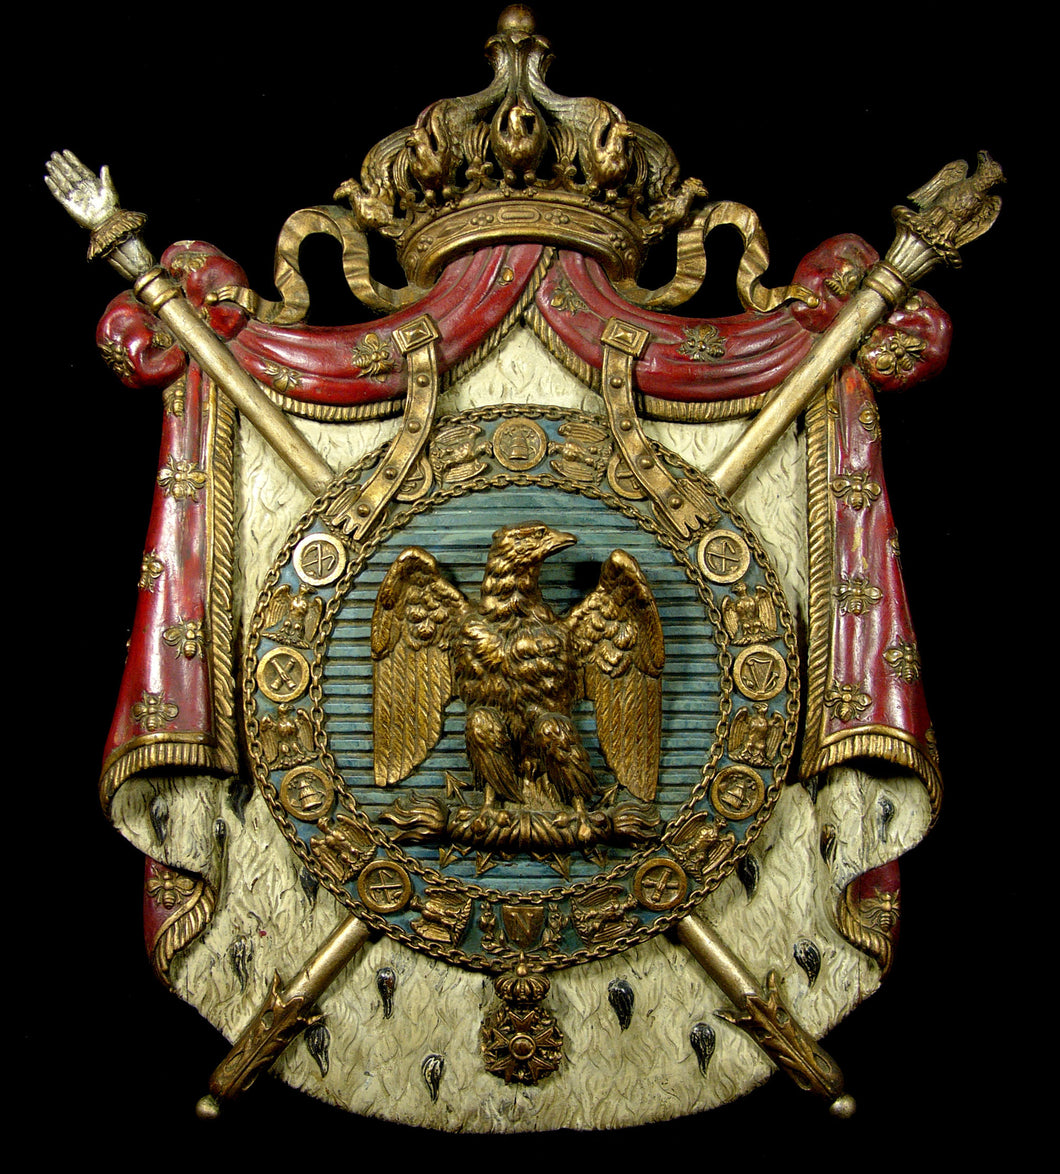 A 19th Century Polychrome and Gilt Wood Napoleonic Coat of Arms, Second Empire (1852-70)